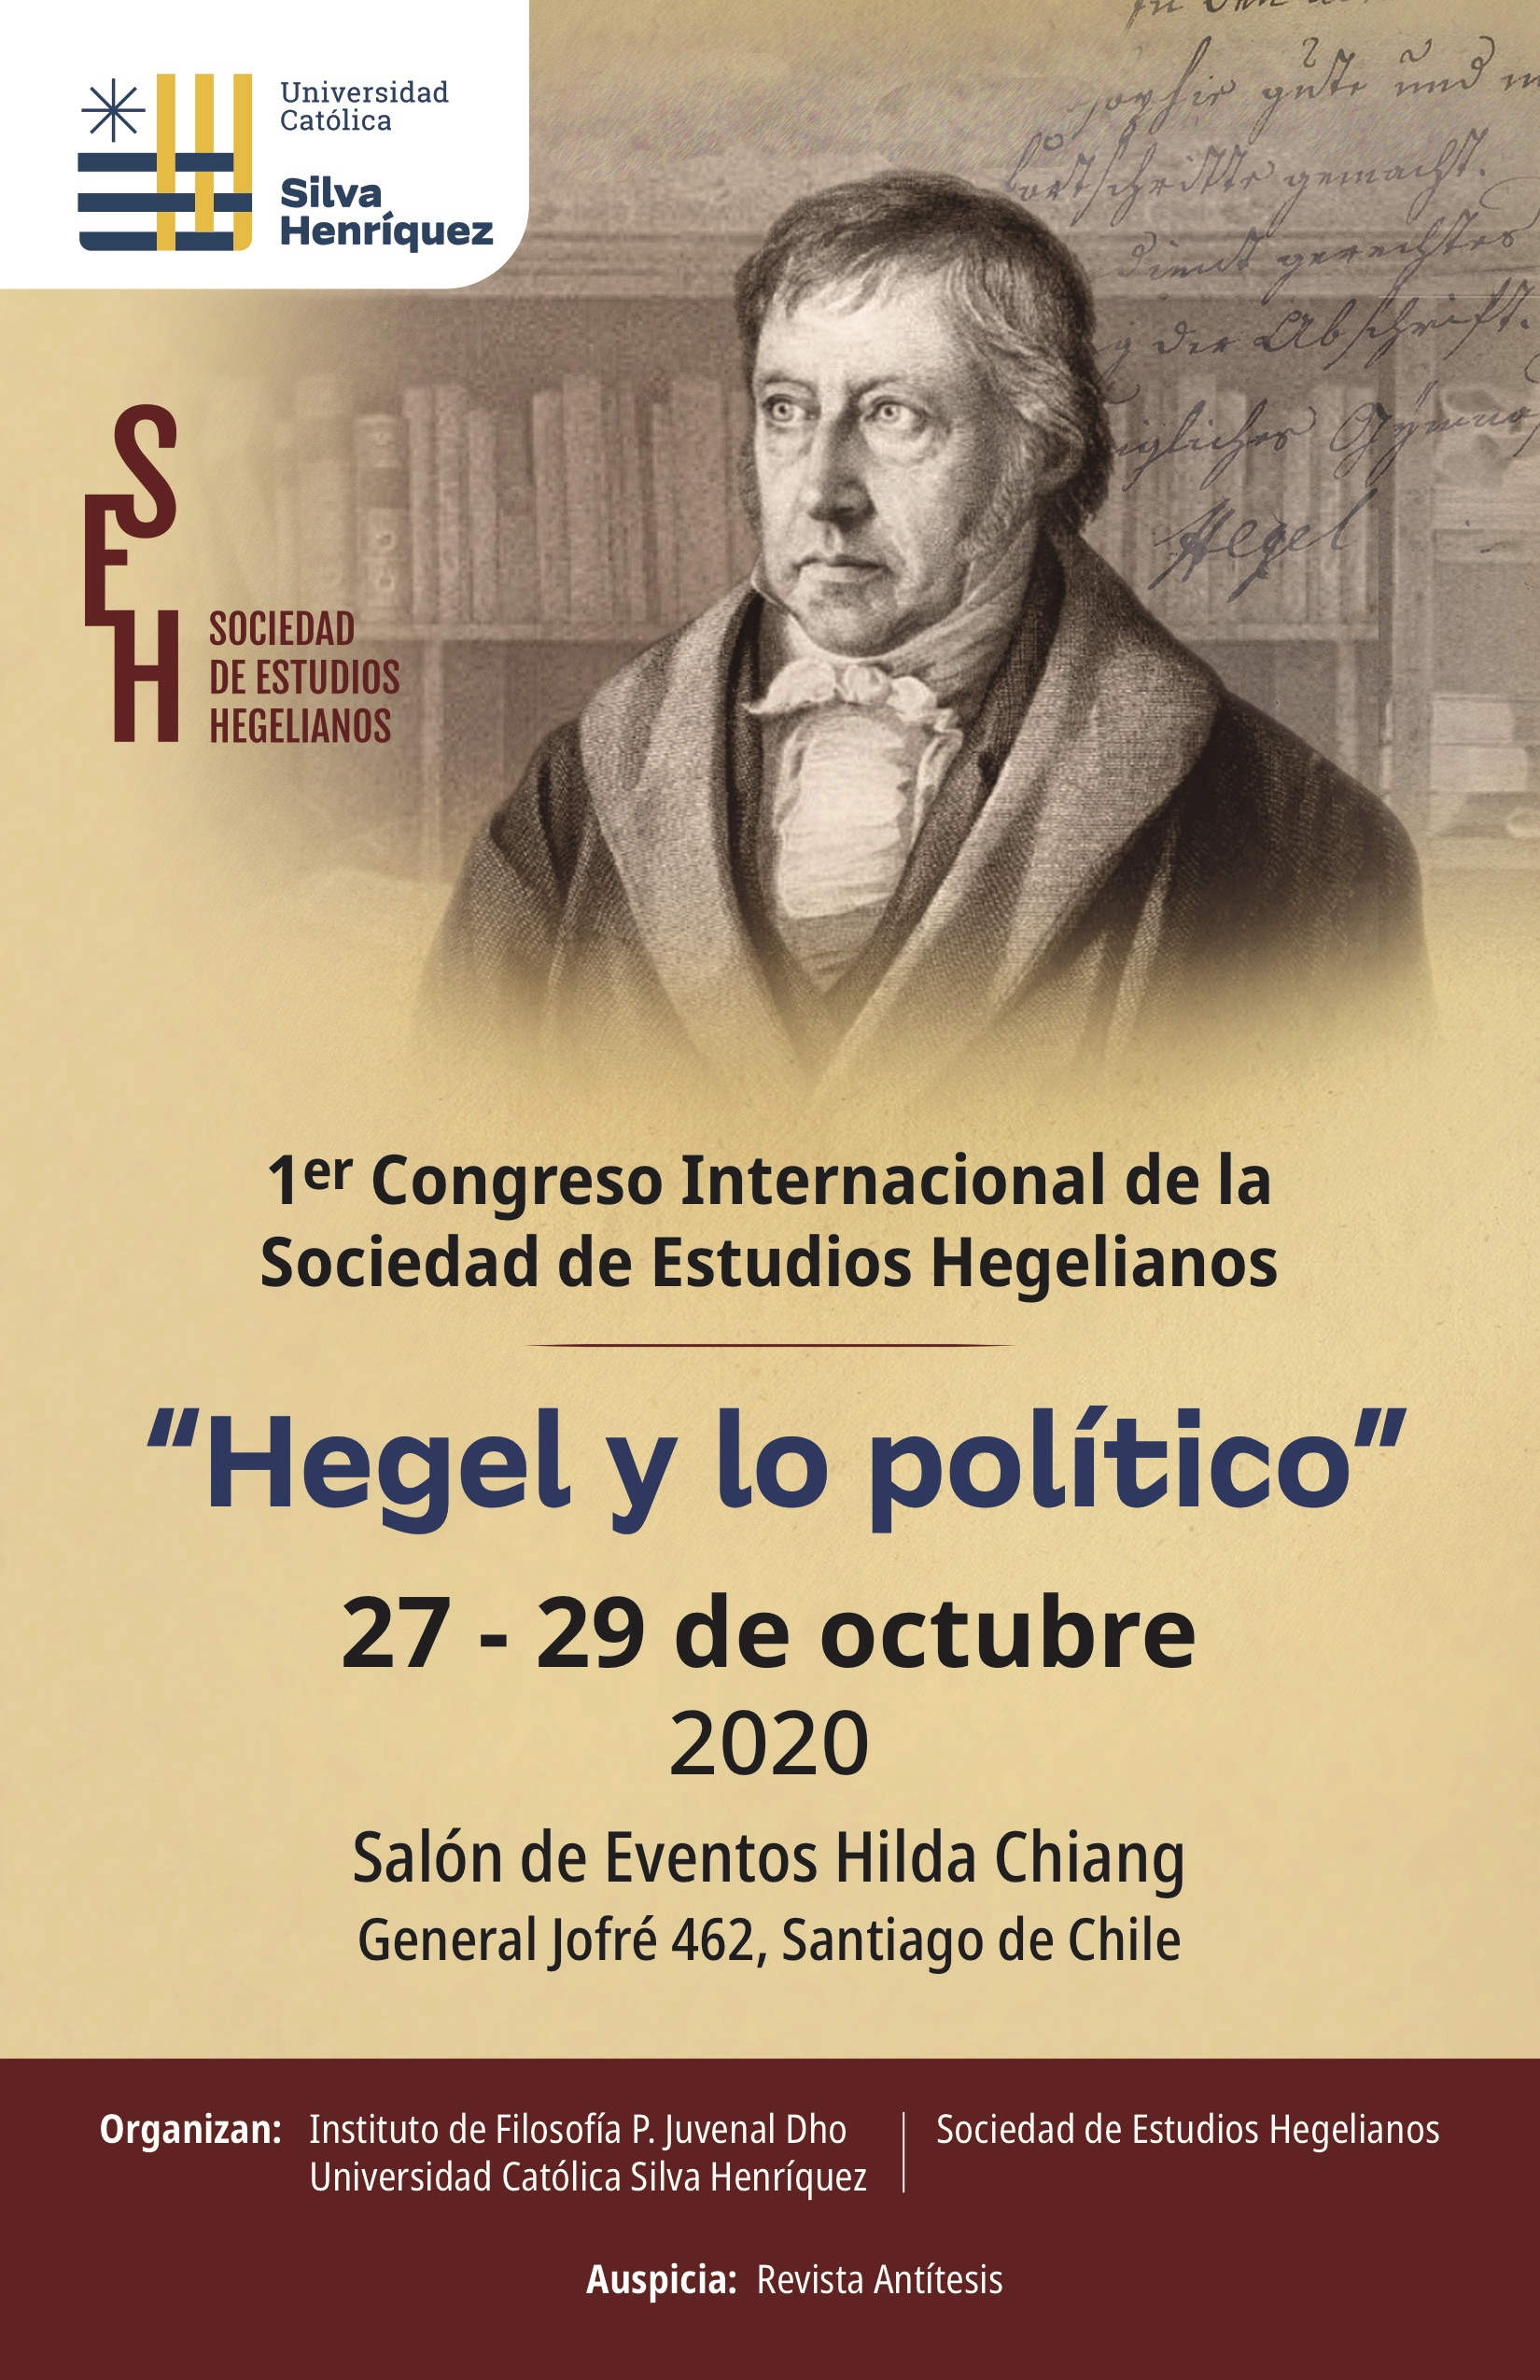 1st International Congress of Sociedad de Estudios Hegelianos